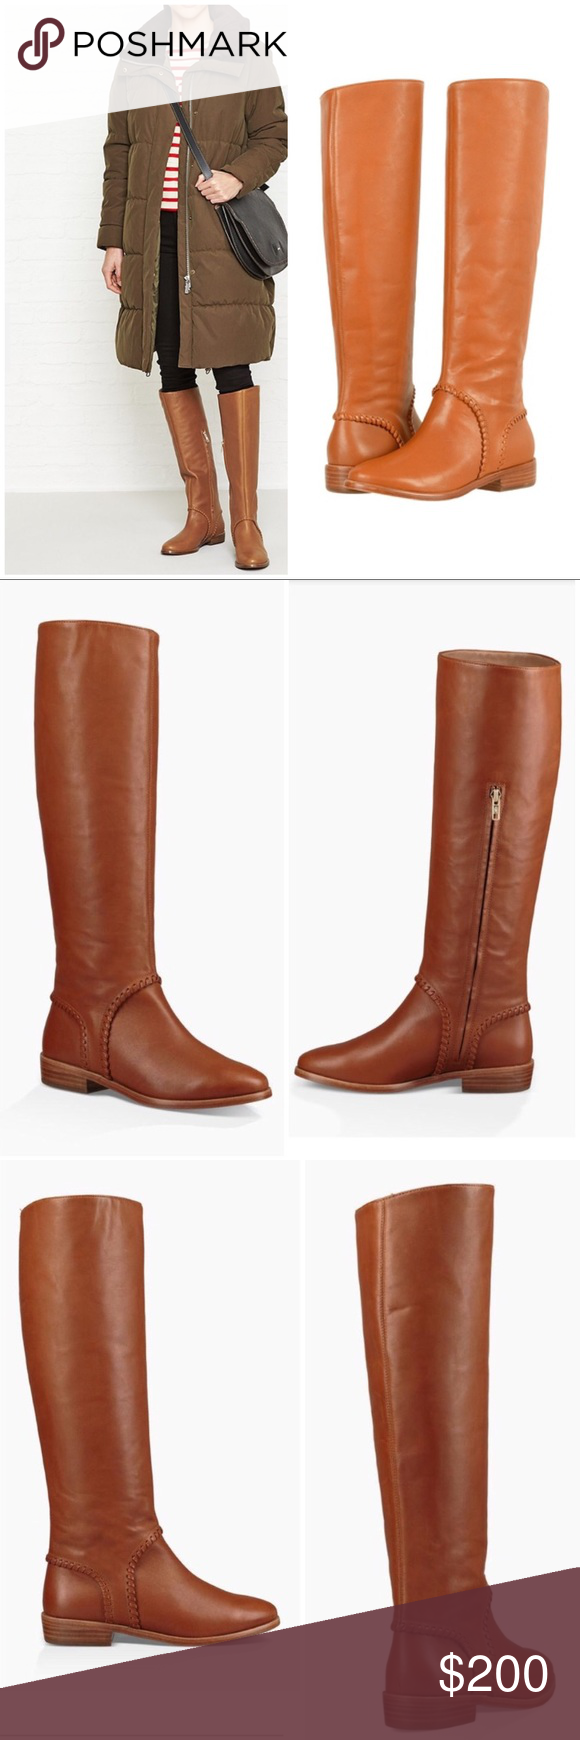 27f6c4c3b39 UGG Gracen Whipstitch Leather whipstitching marches a striking curve ...